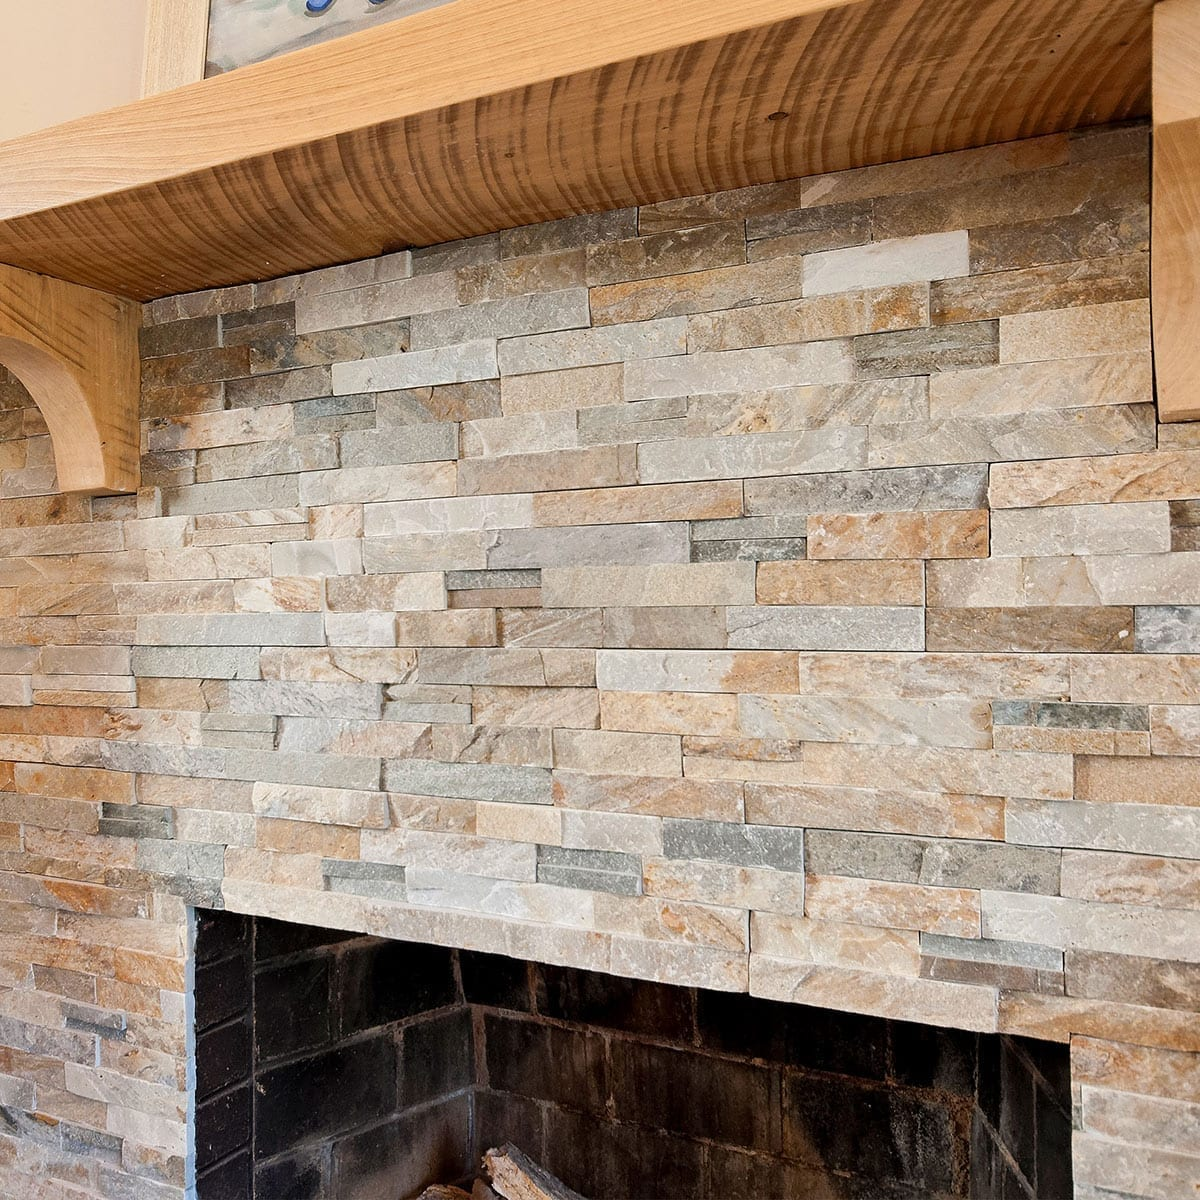 Tile Work-around A Fireplace